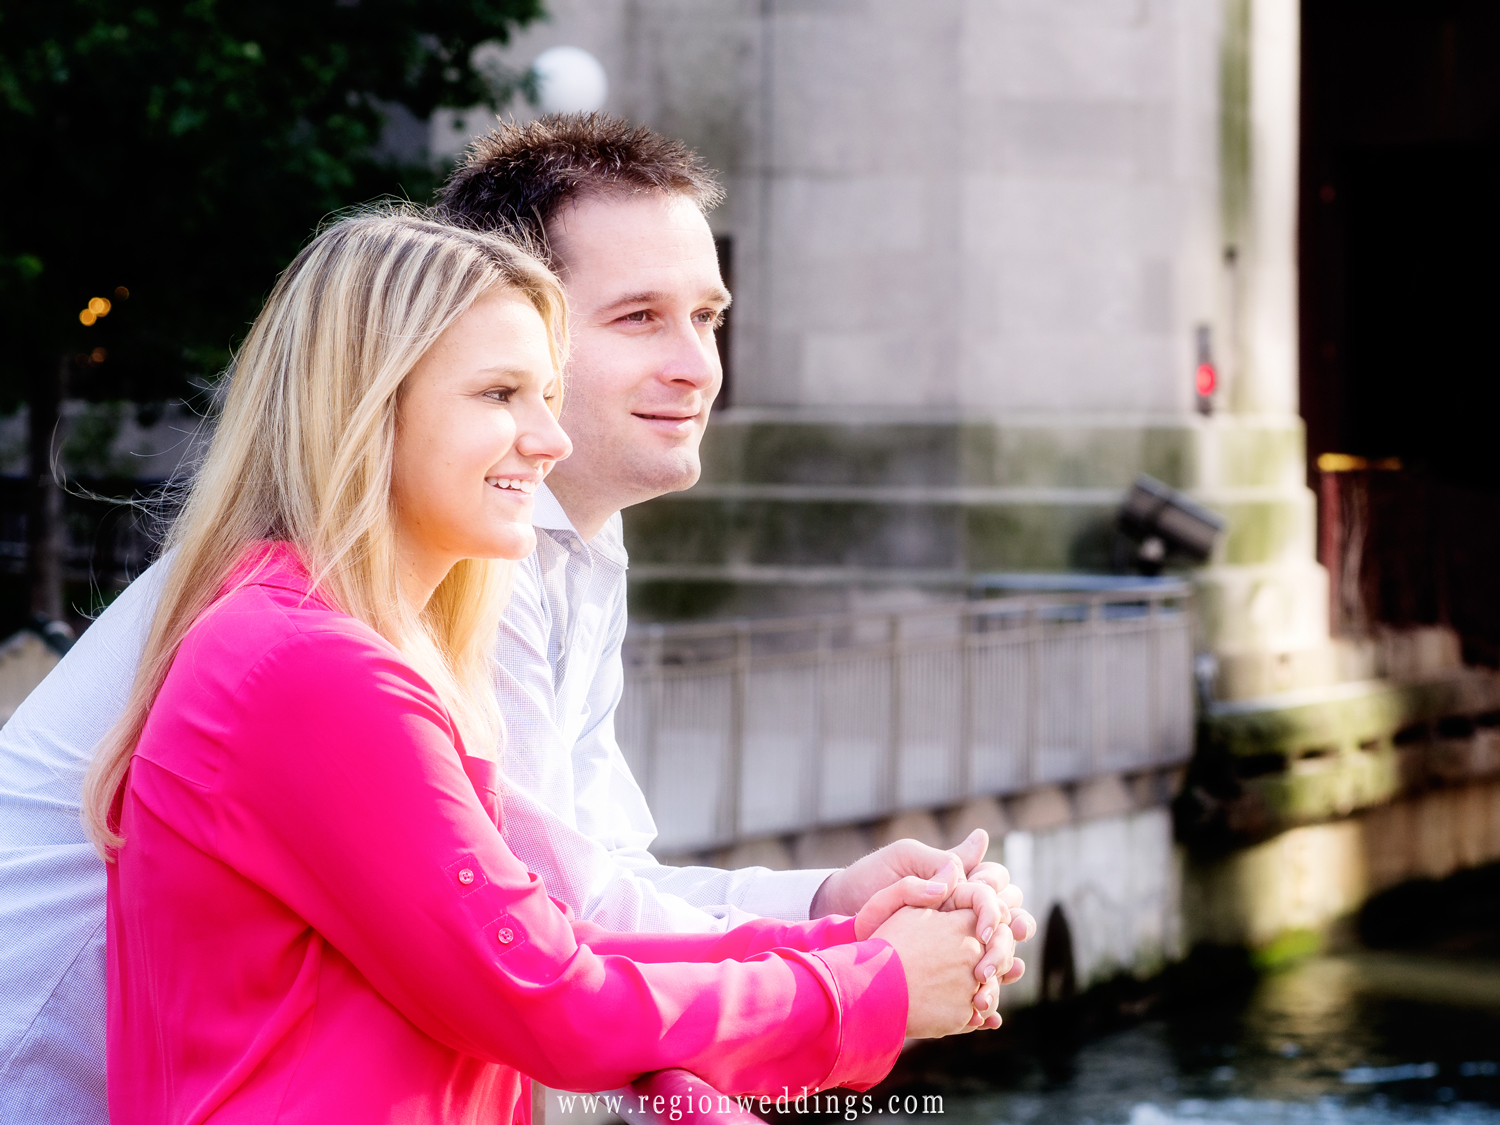 An engaged couple overlooks the Chicago River during their engagement session.